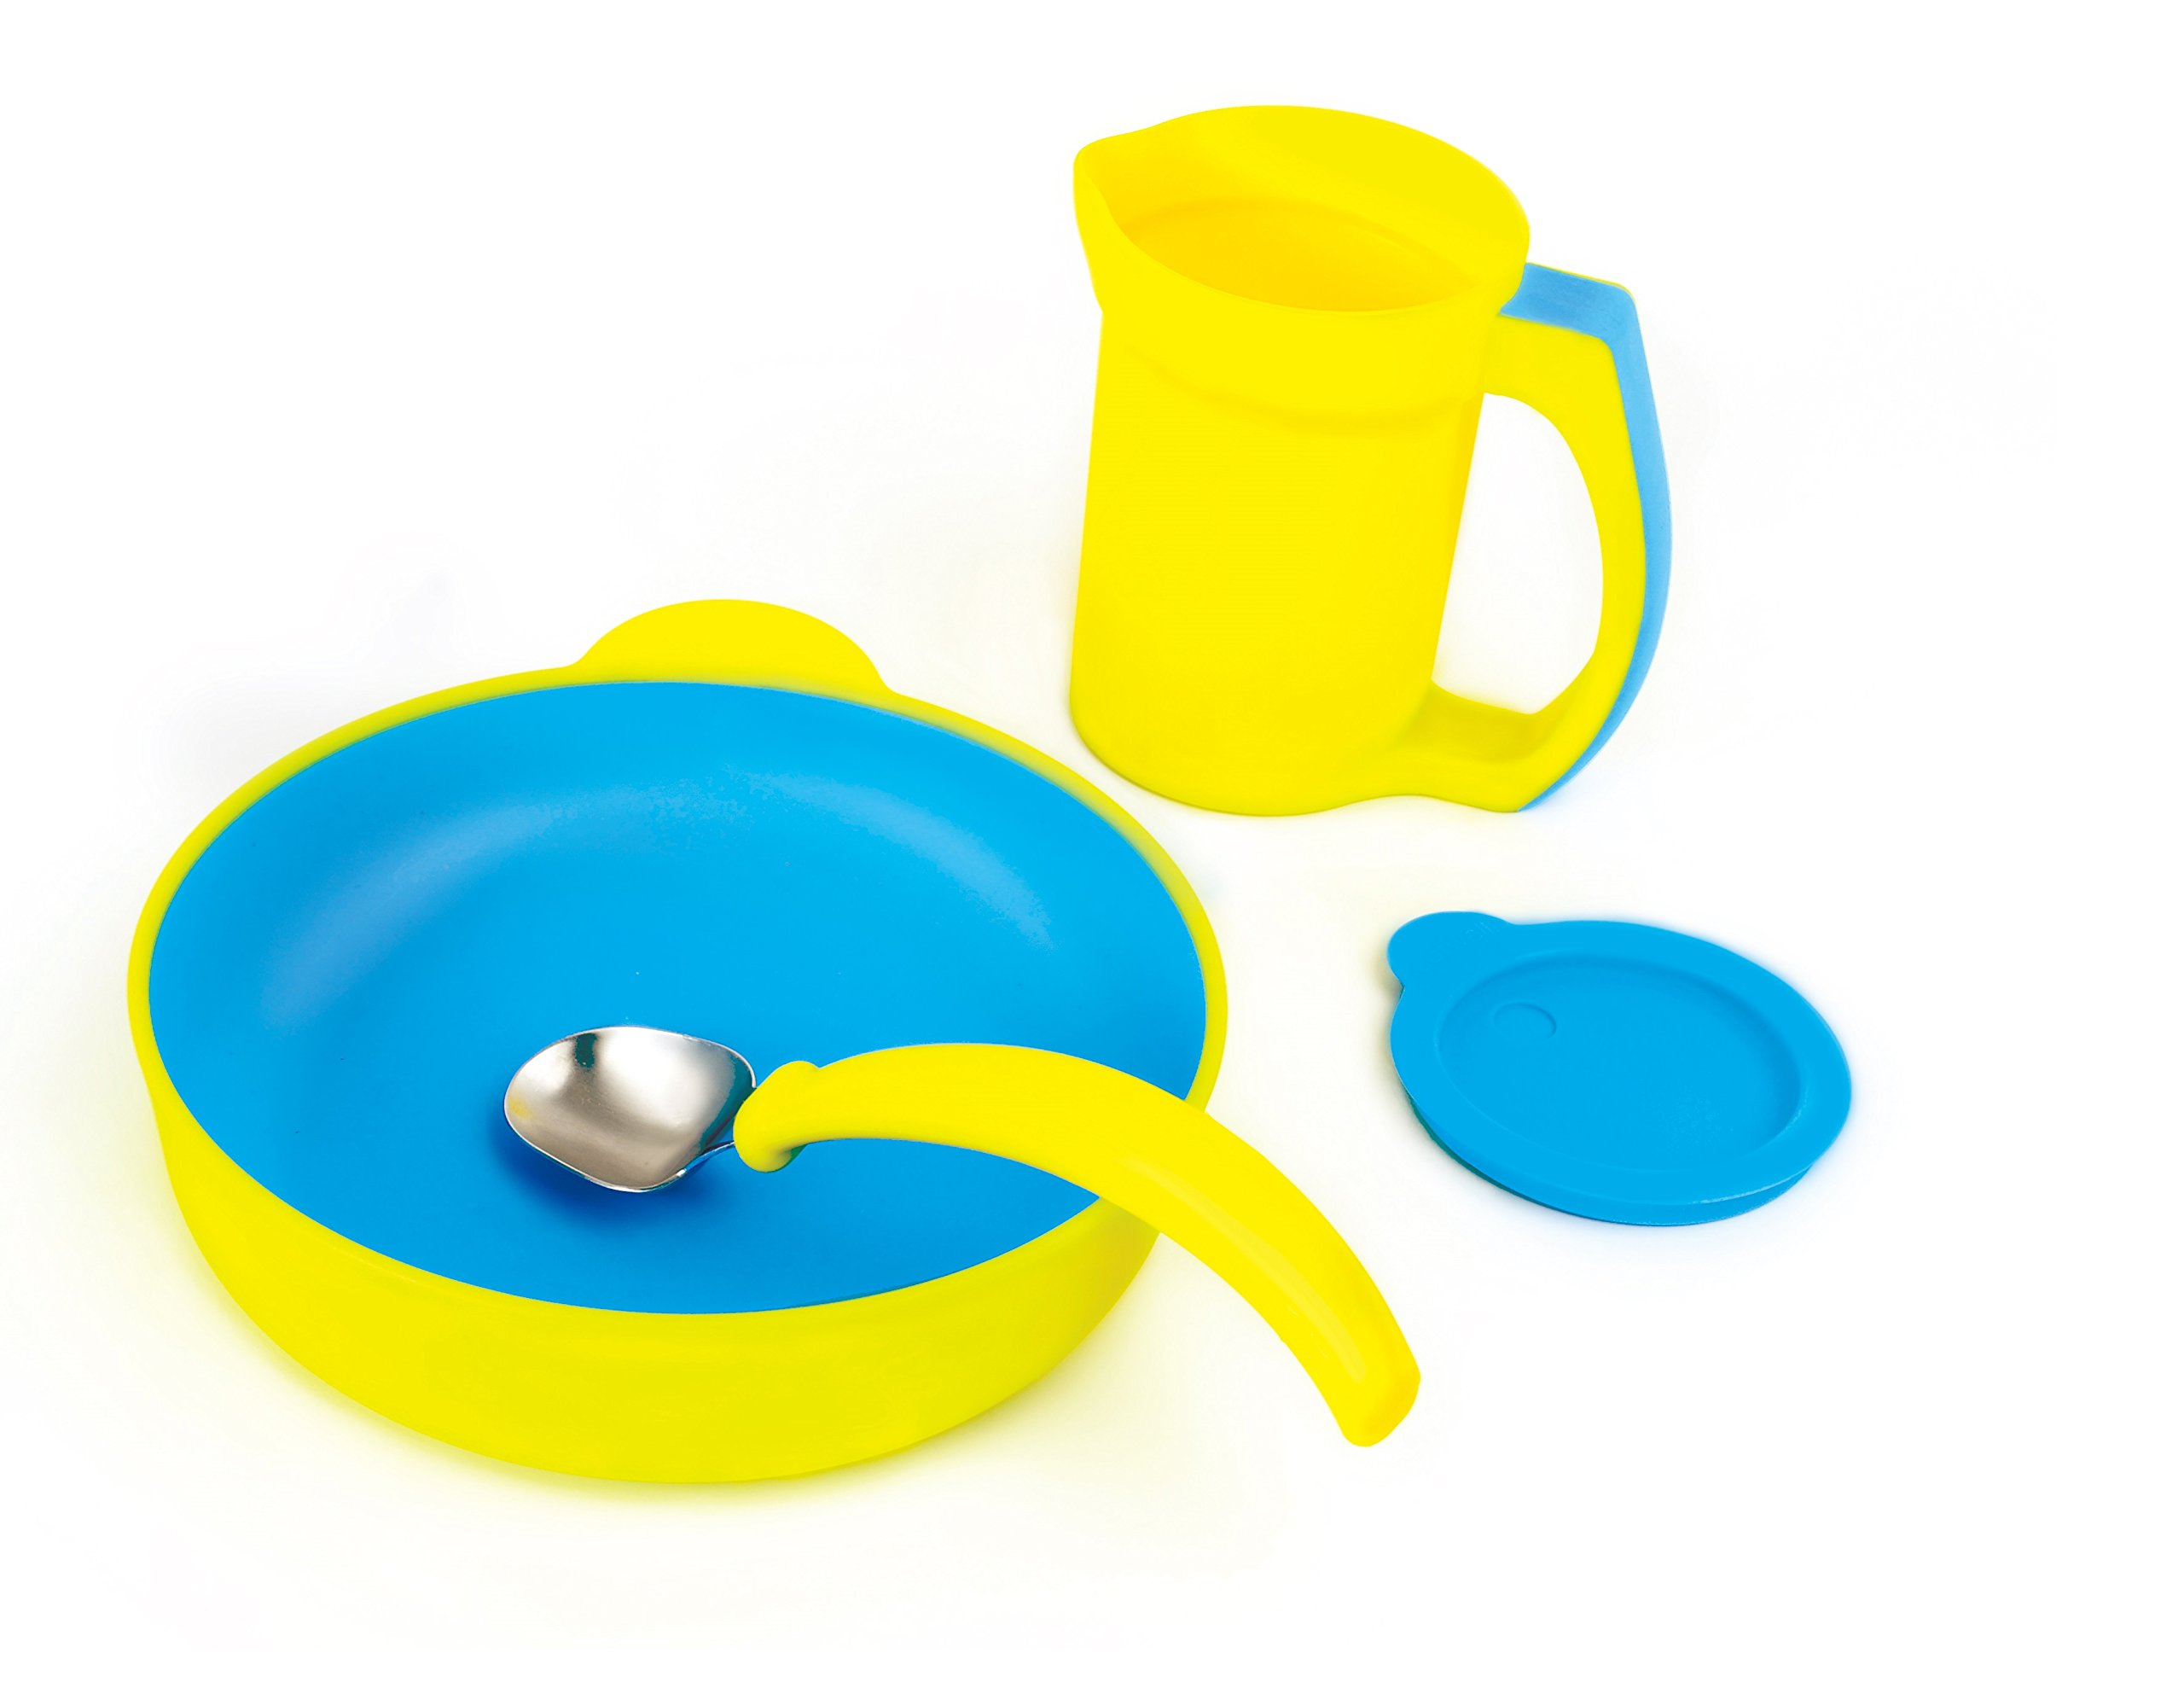 Sha Design Eatwell Assistive Tableware Set, Yellow, 4 Piece